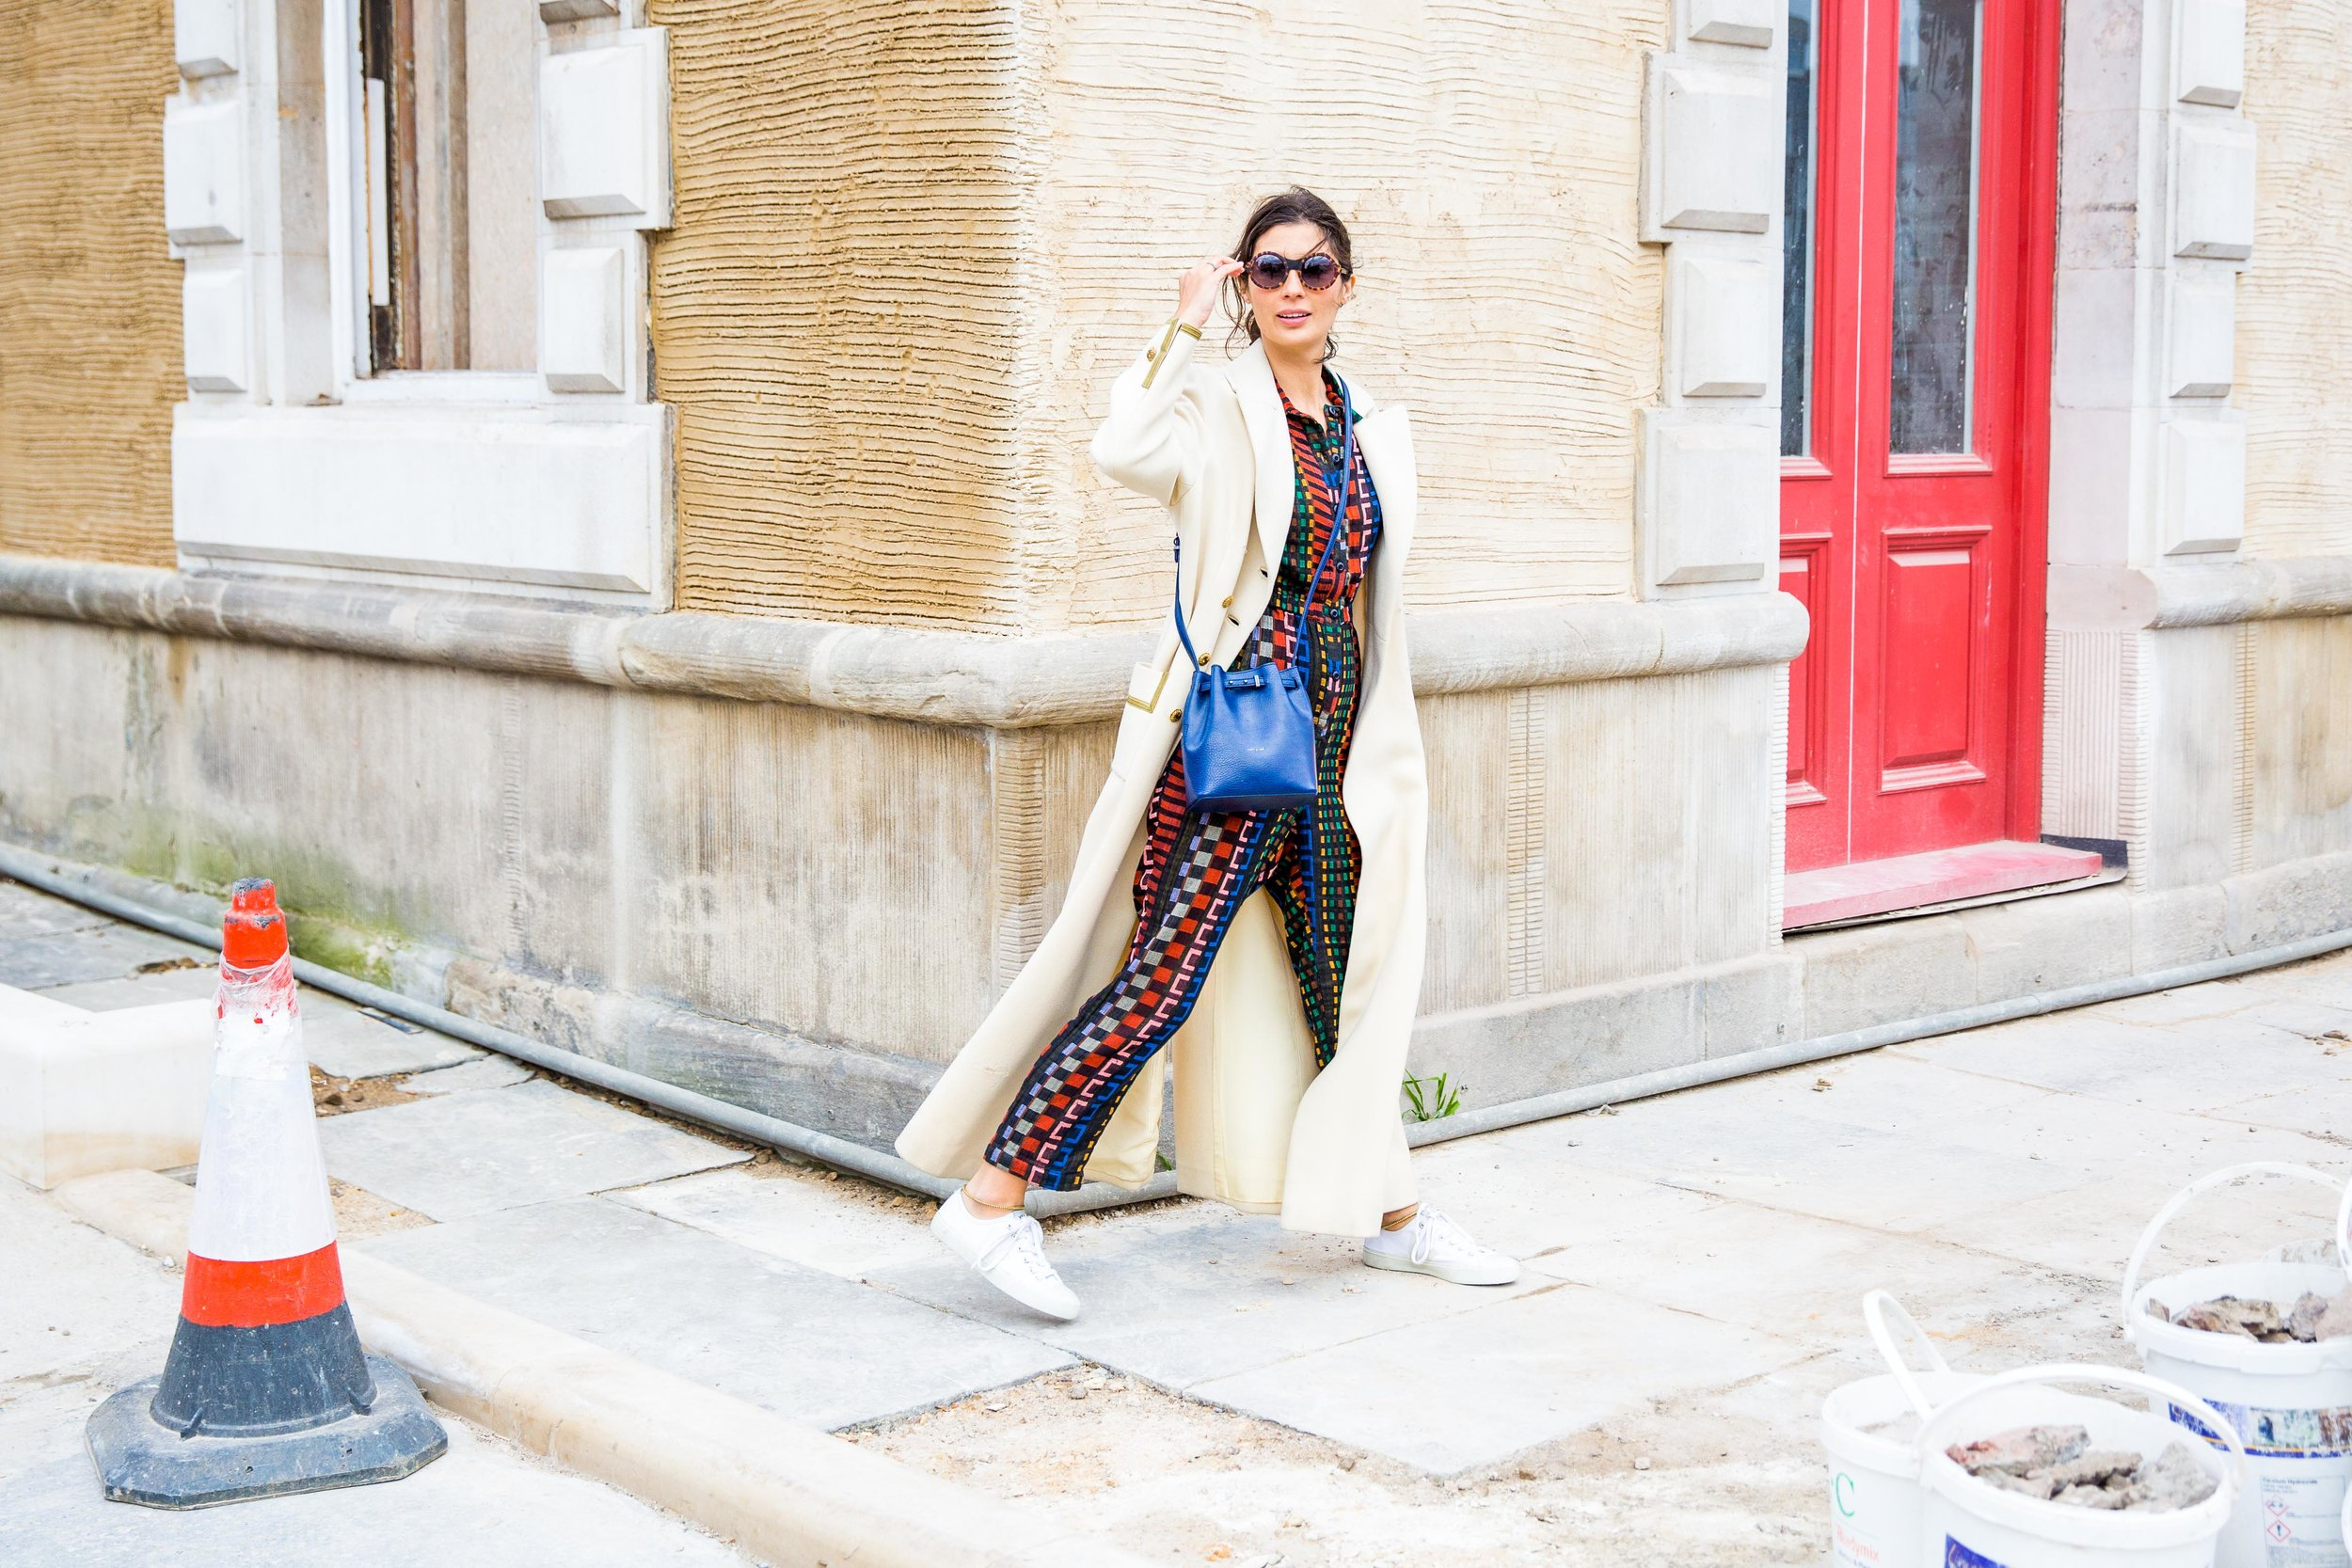 JasmineHemsley_FashionRevolution_Selects_NickHopper-0830.jpg